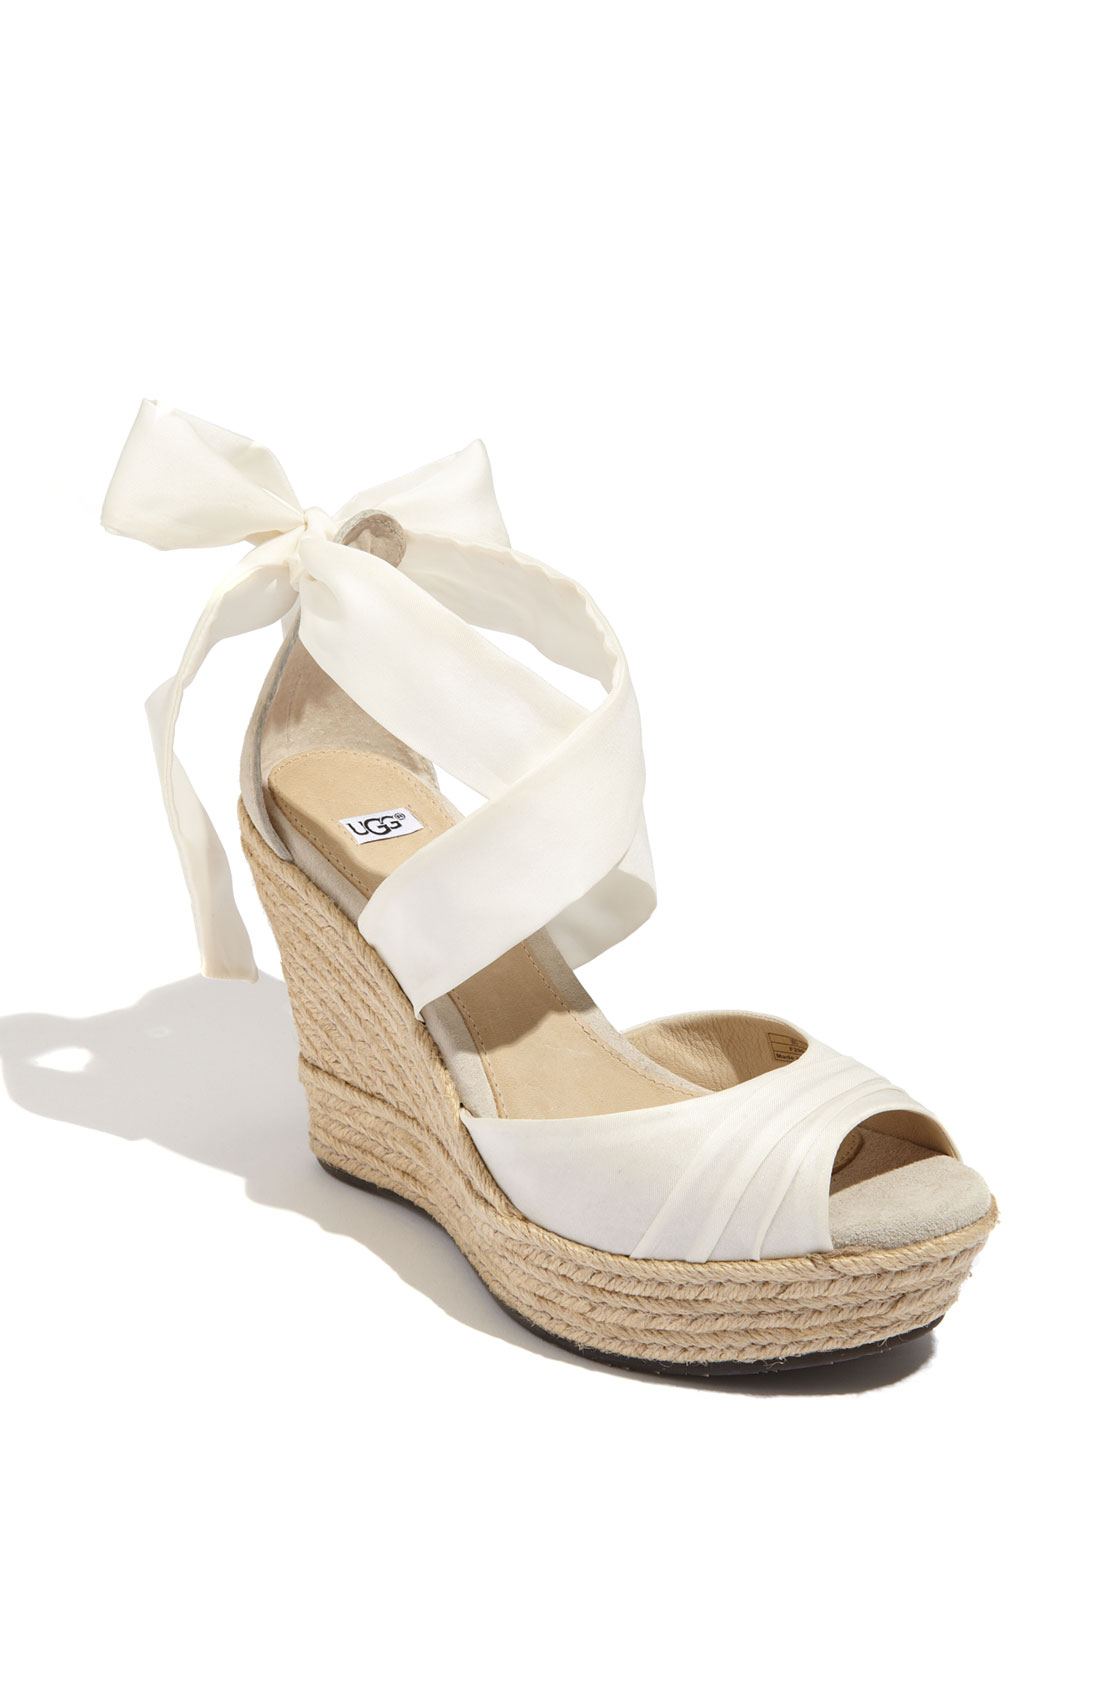 Women's Wedges. Elevate your look with a pair of women's wedges this sashimicraft.gae our progressive edit for endless style possibilities ranging from wedge heeled boots to sleek, platform sandals, with everything in between.